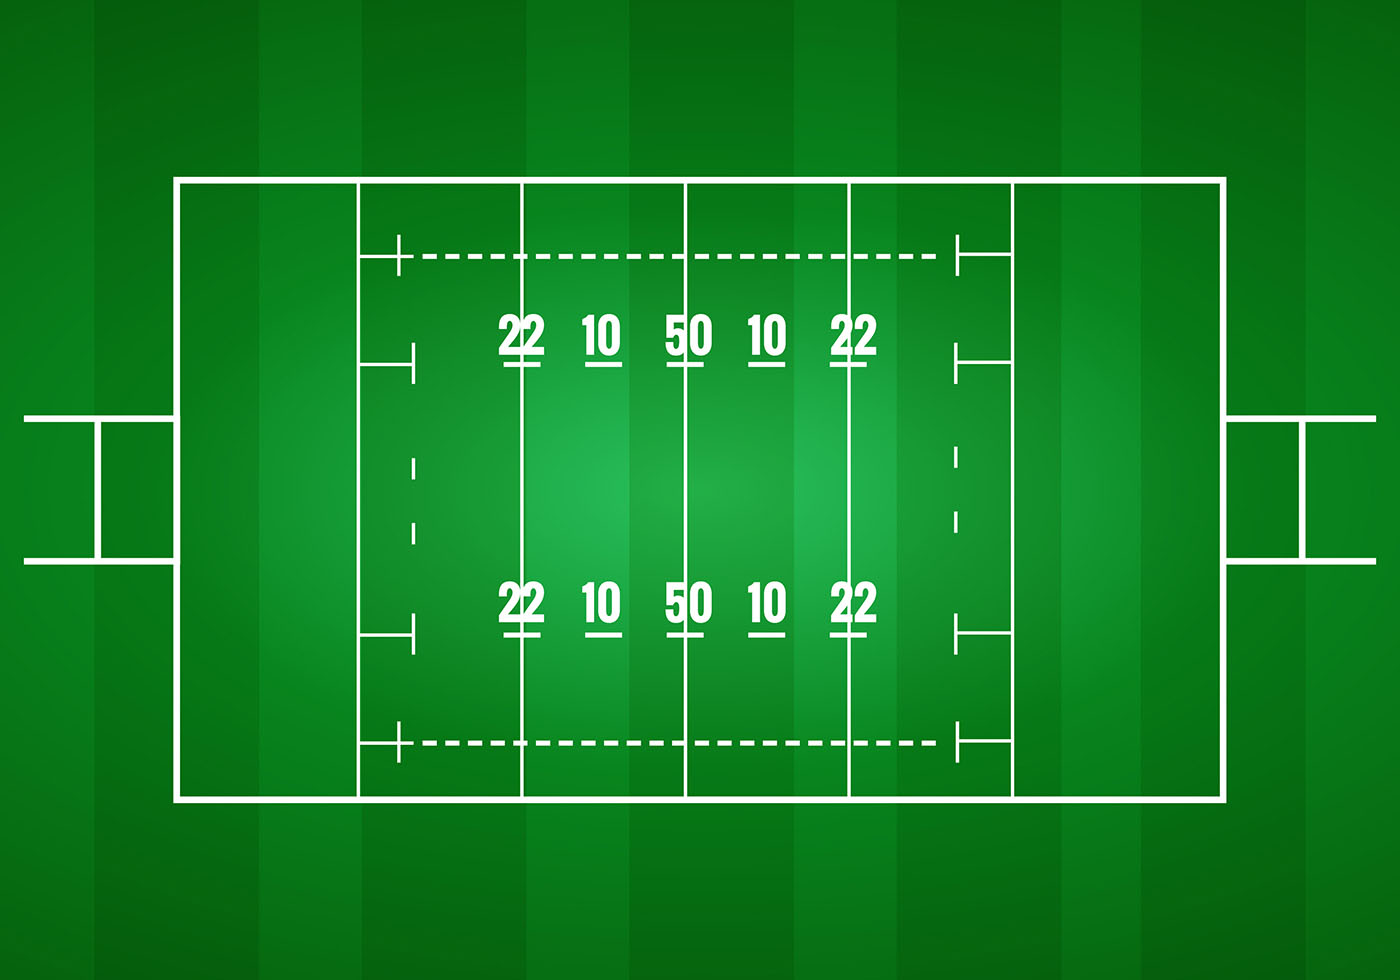 rugby pitch vector download free vector art  stock clip art of soccer ball logo clip art of soccer ball going through paper